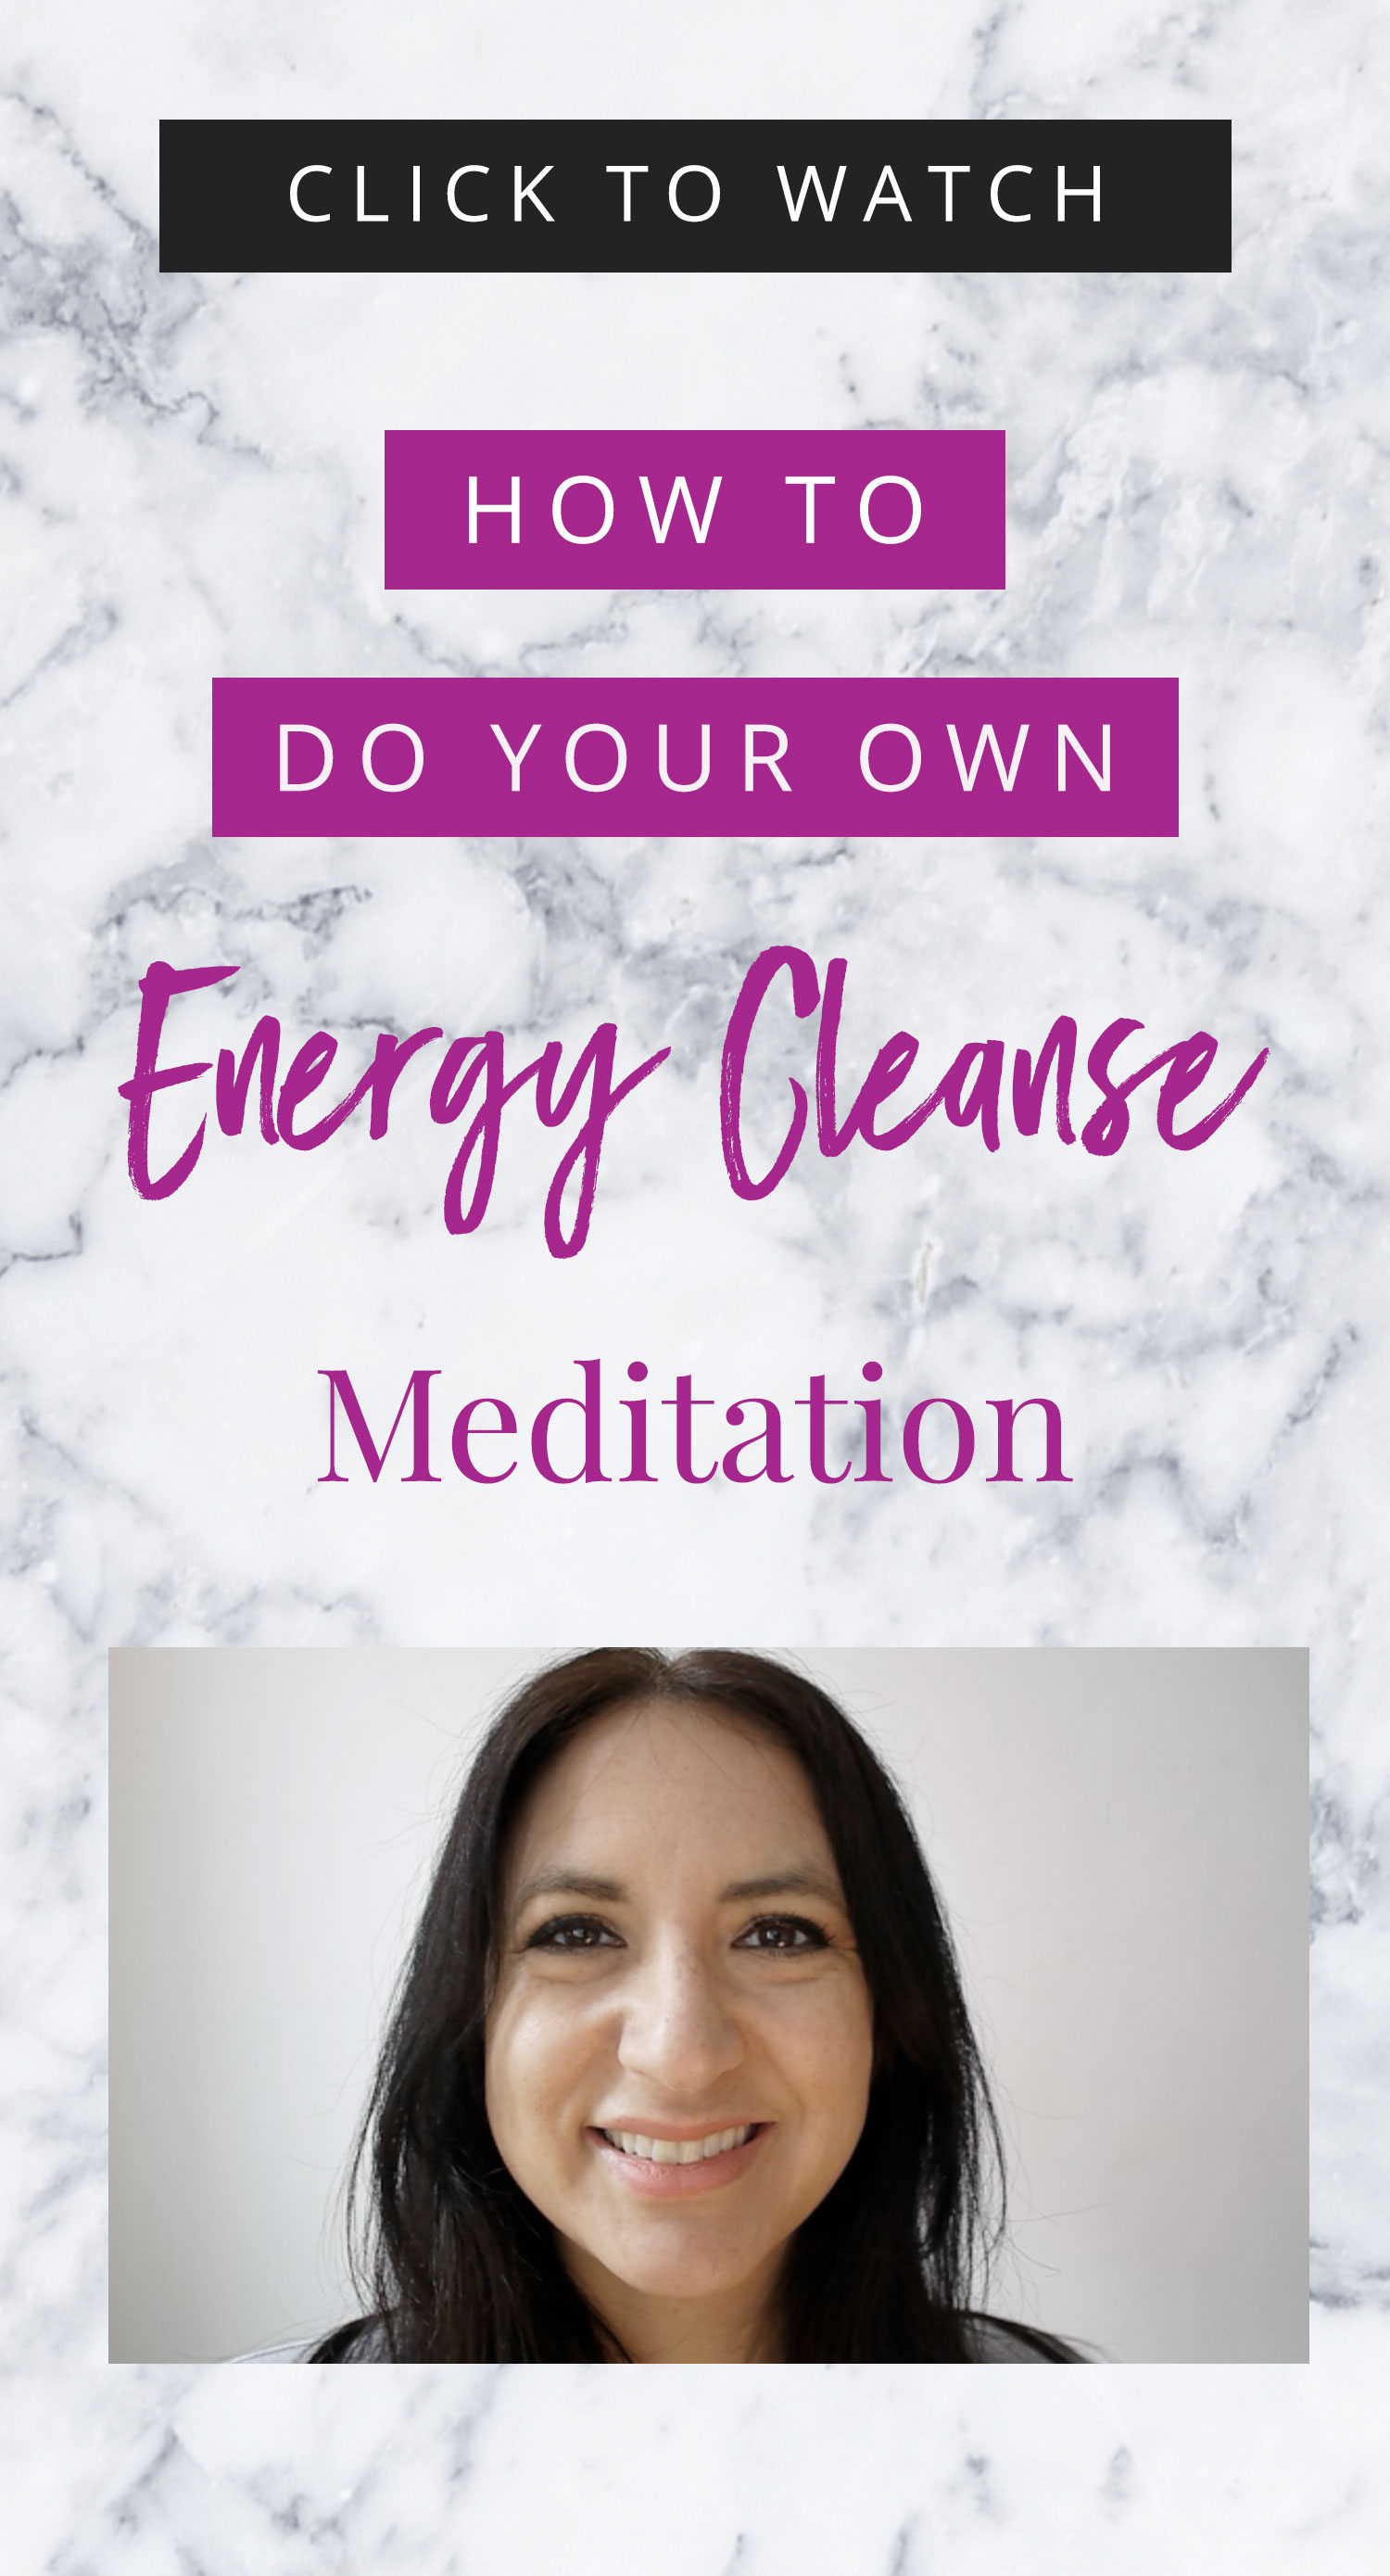 VIDEO: How To Energy Cleanse Yourself